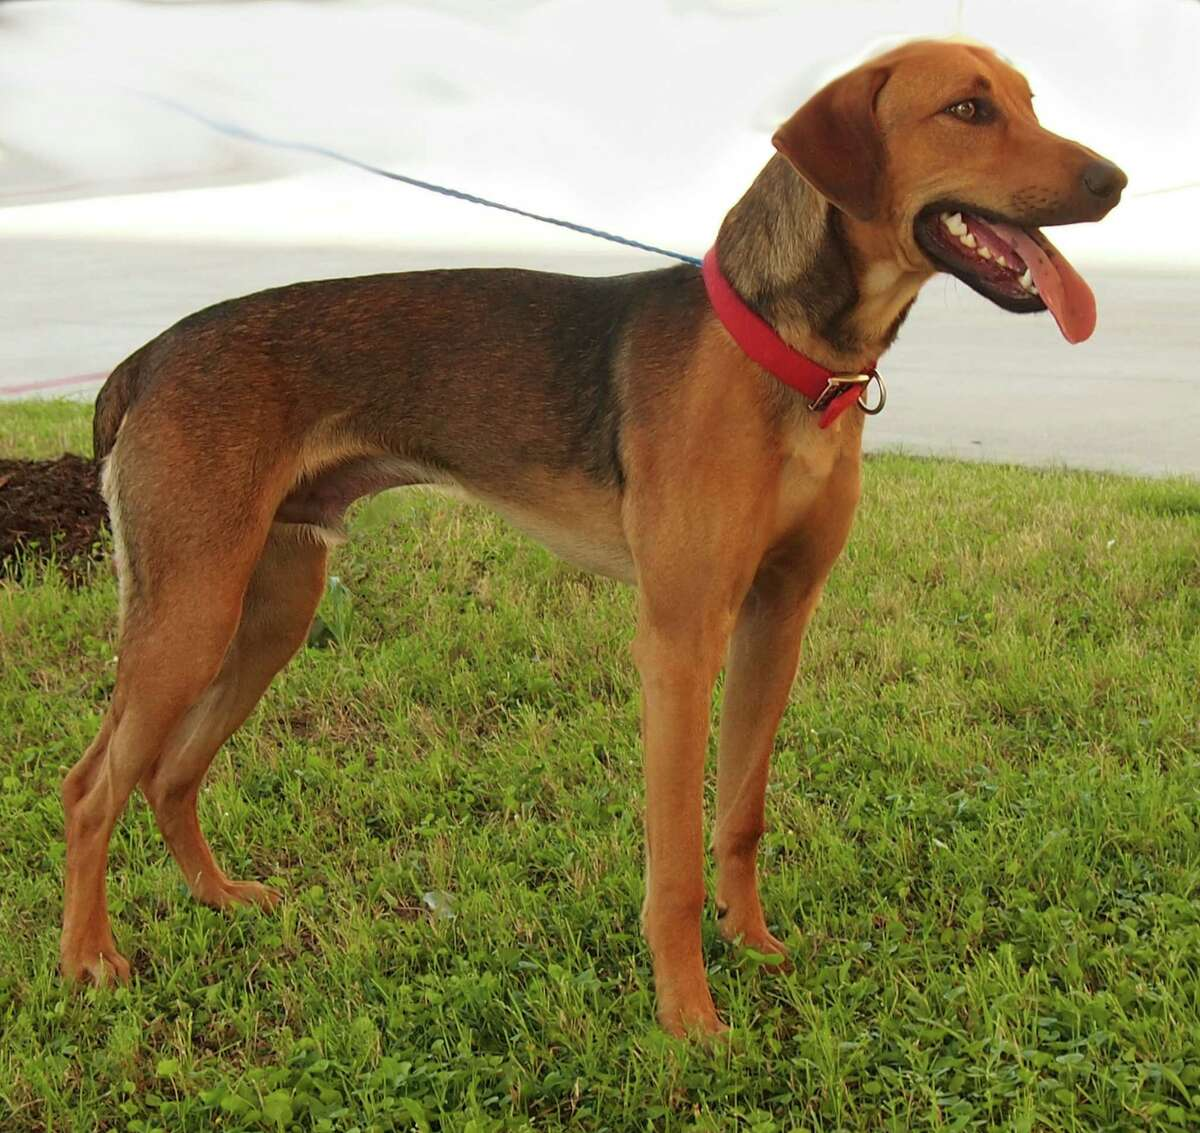 Pluto, a 1-year-old red bone coon hound/shepherd mix will be available for adoption at 11 a.m. Friday at Citizens for Animal Protection, 17555 I-10 W. More information: cap4pets.org or 281-497-0591. OLYMPUS DIGITAL CAMERA